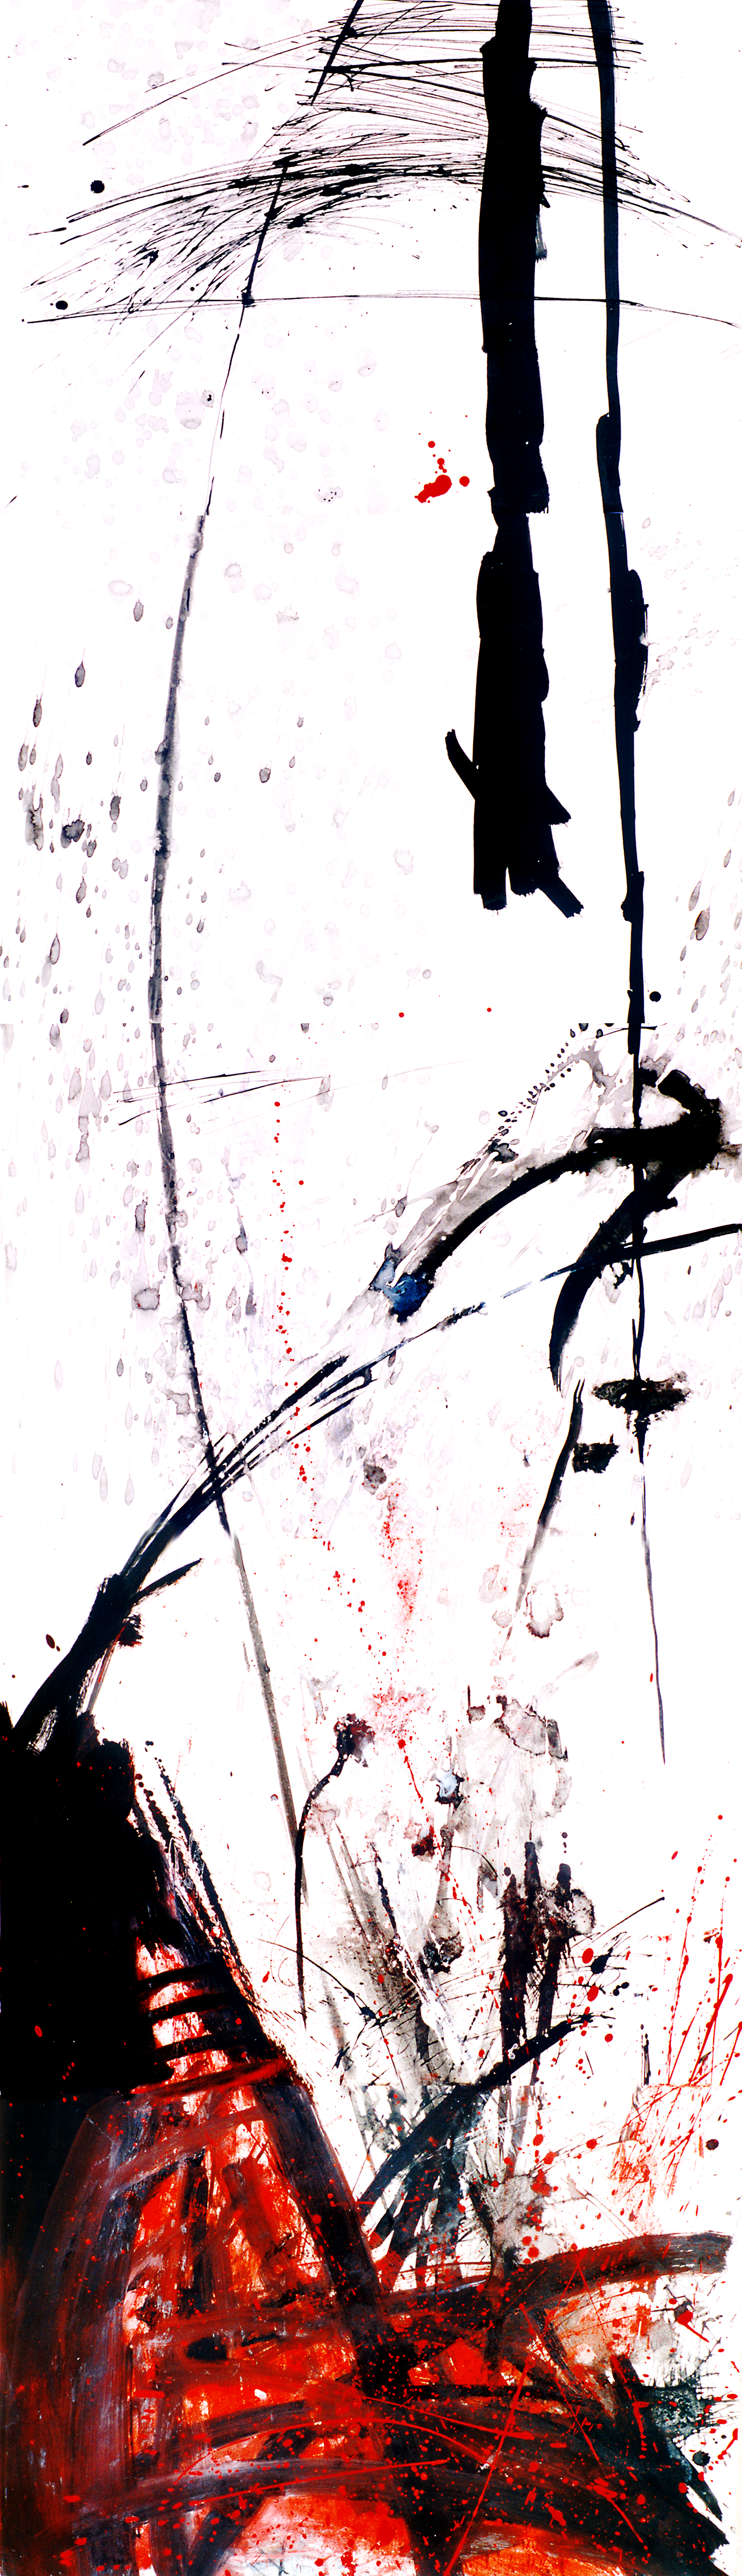 The Torch, Drawing 200 x 70cm